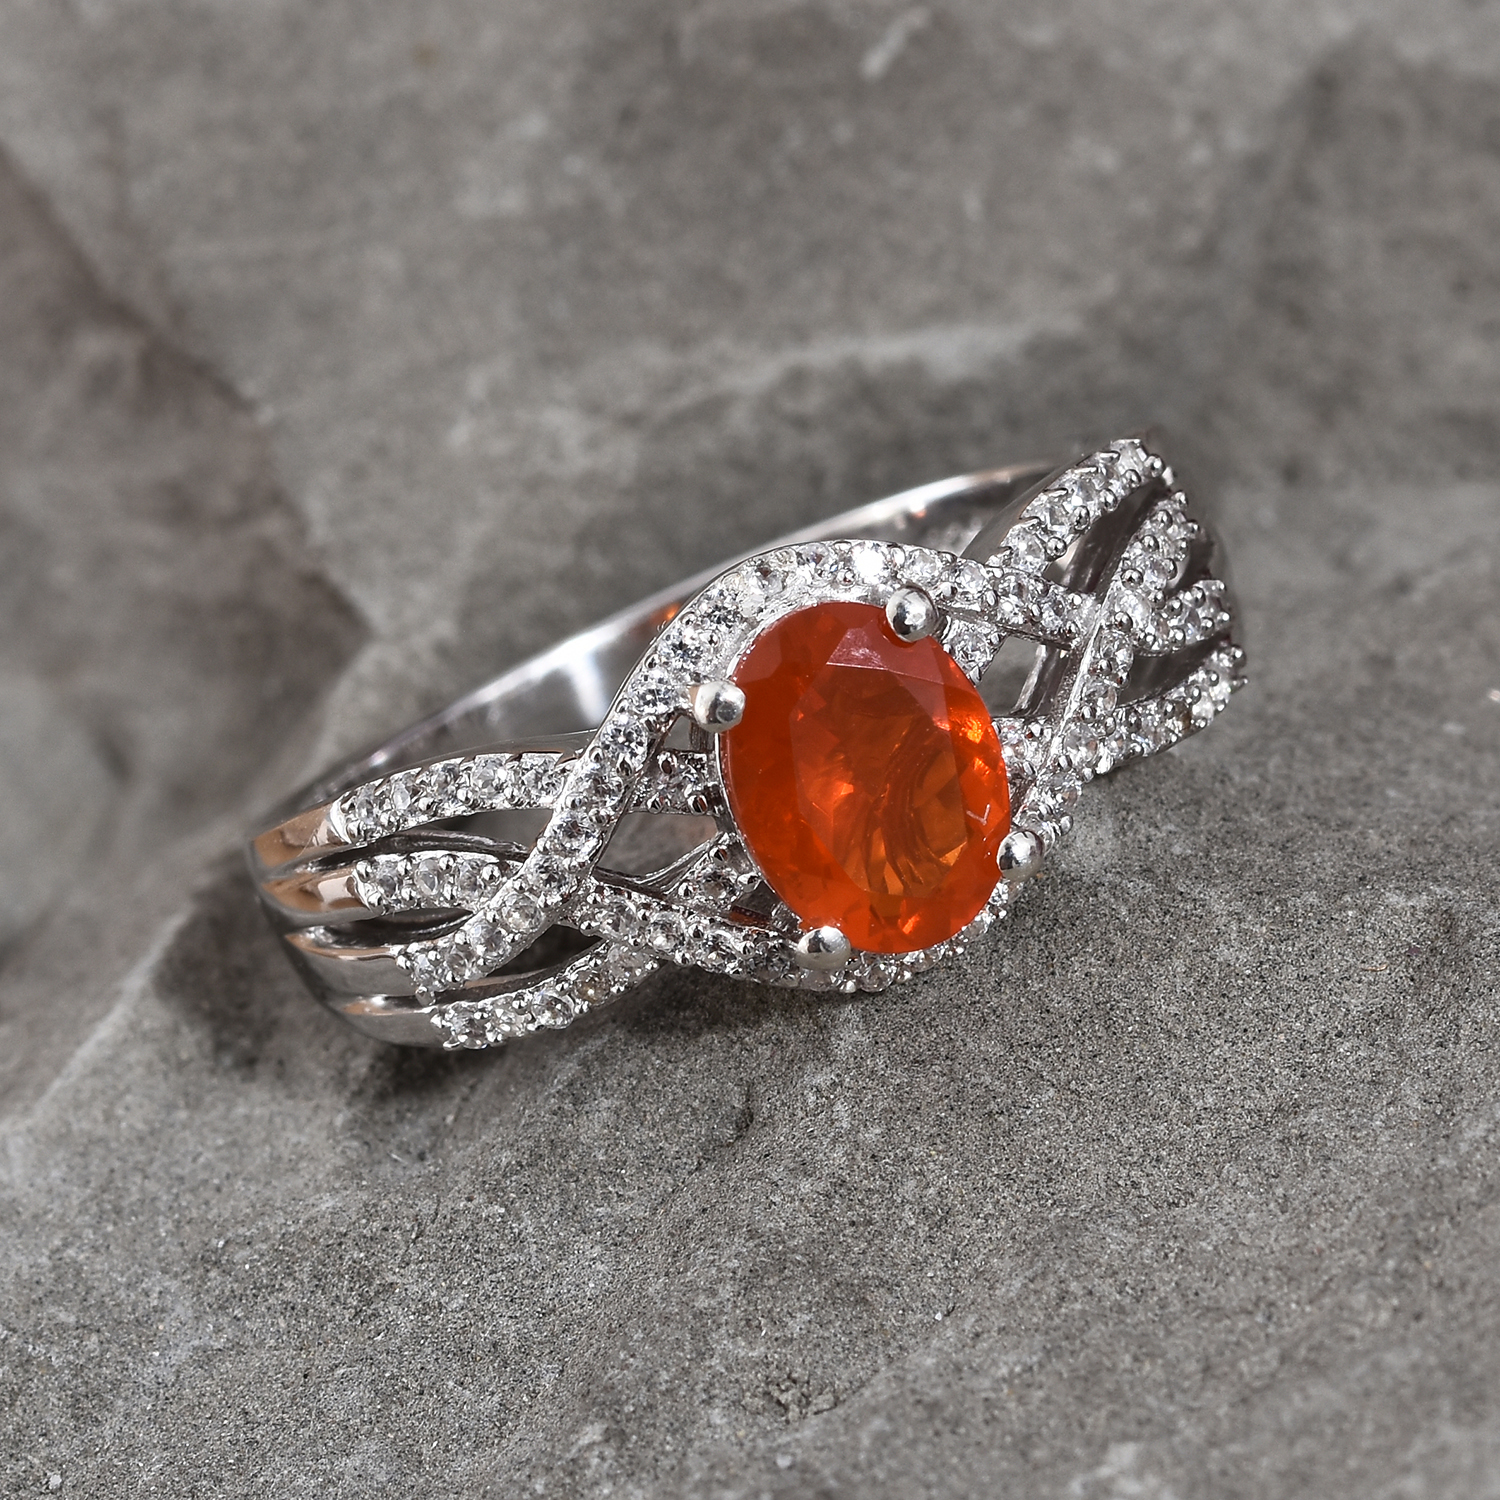 Crimson Fire Opal, Cambodian Zircon Ring in Platinum Over Sterling Silver (Size 7.0) 1.45 ctw